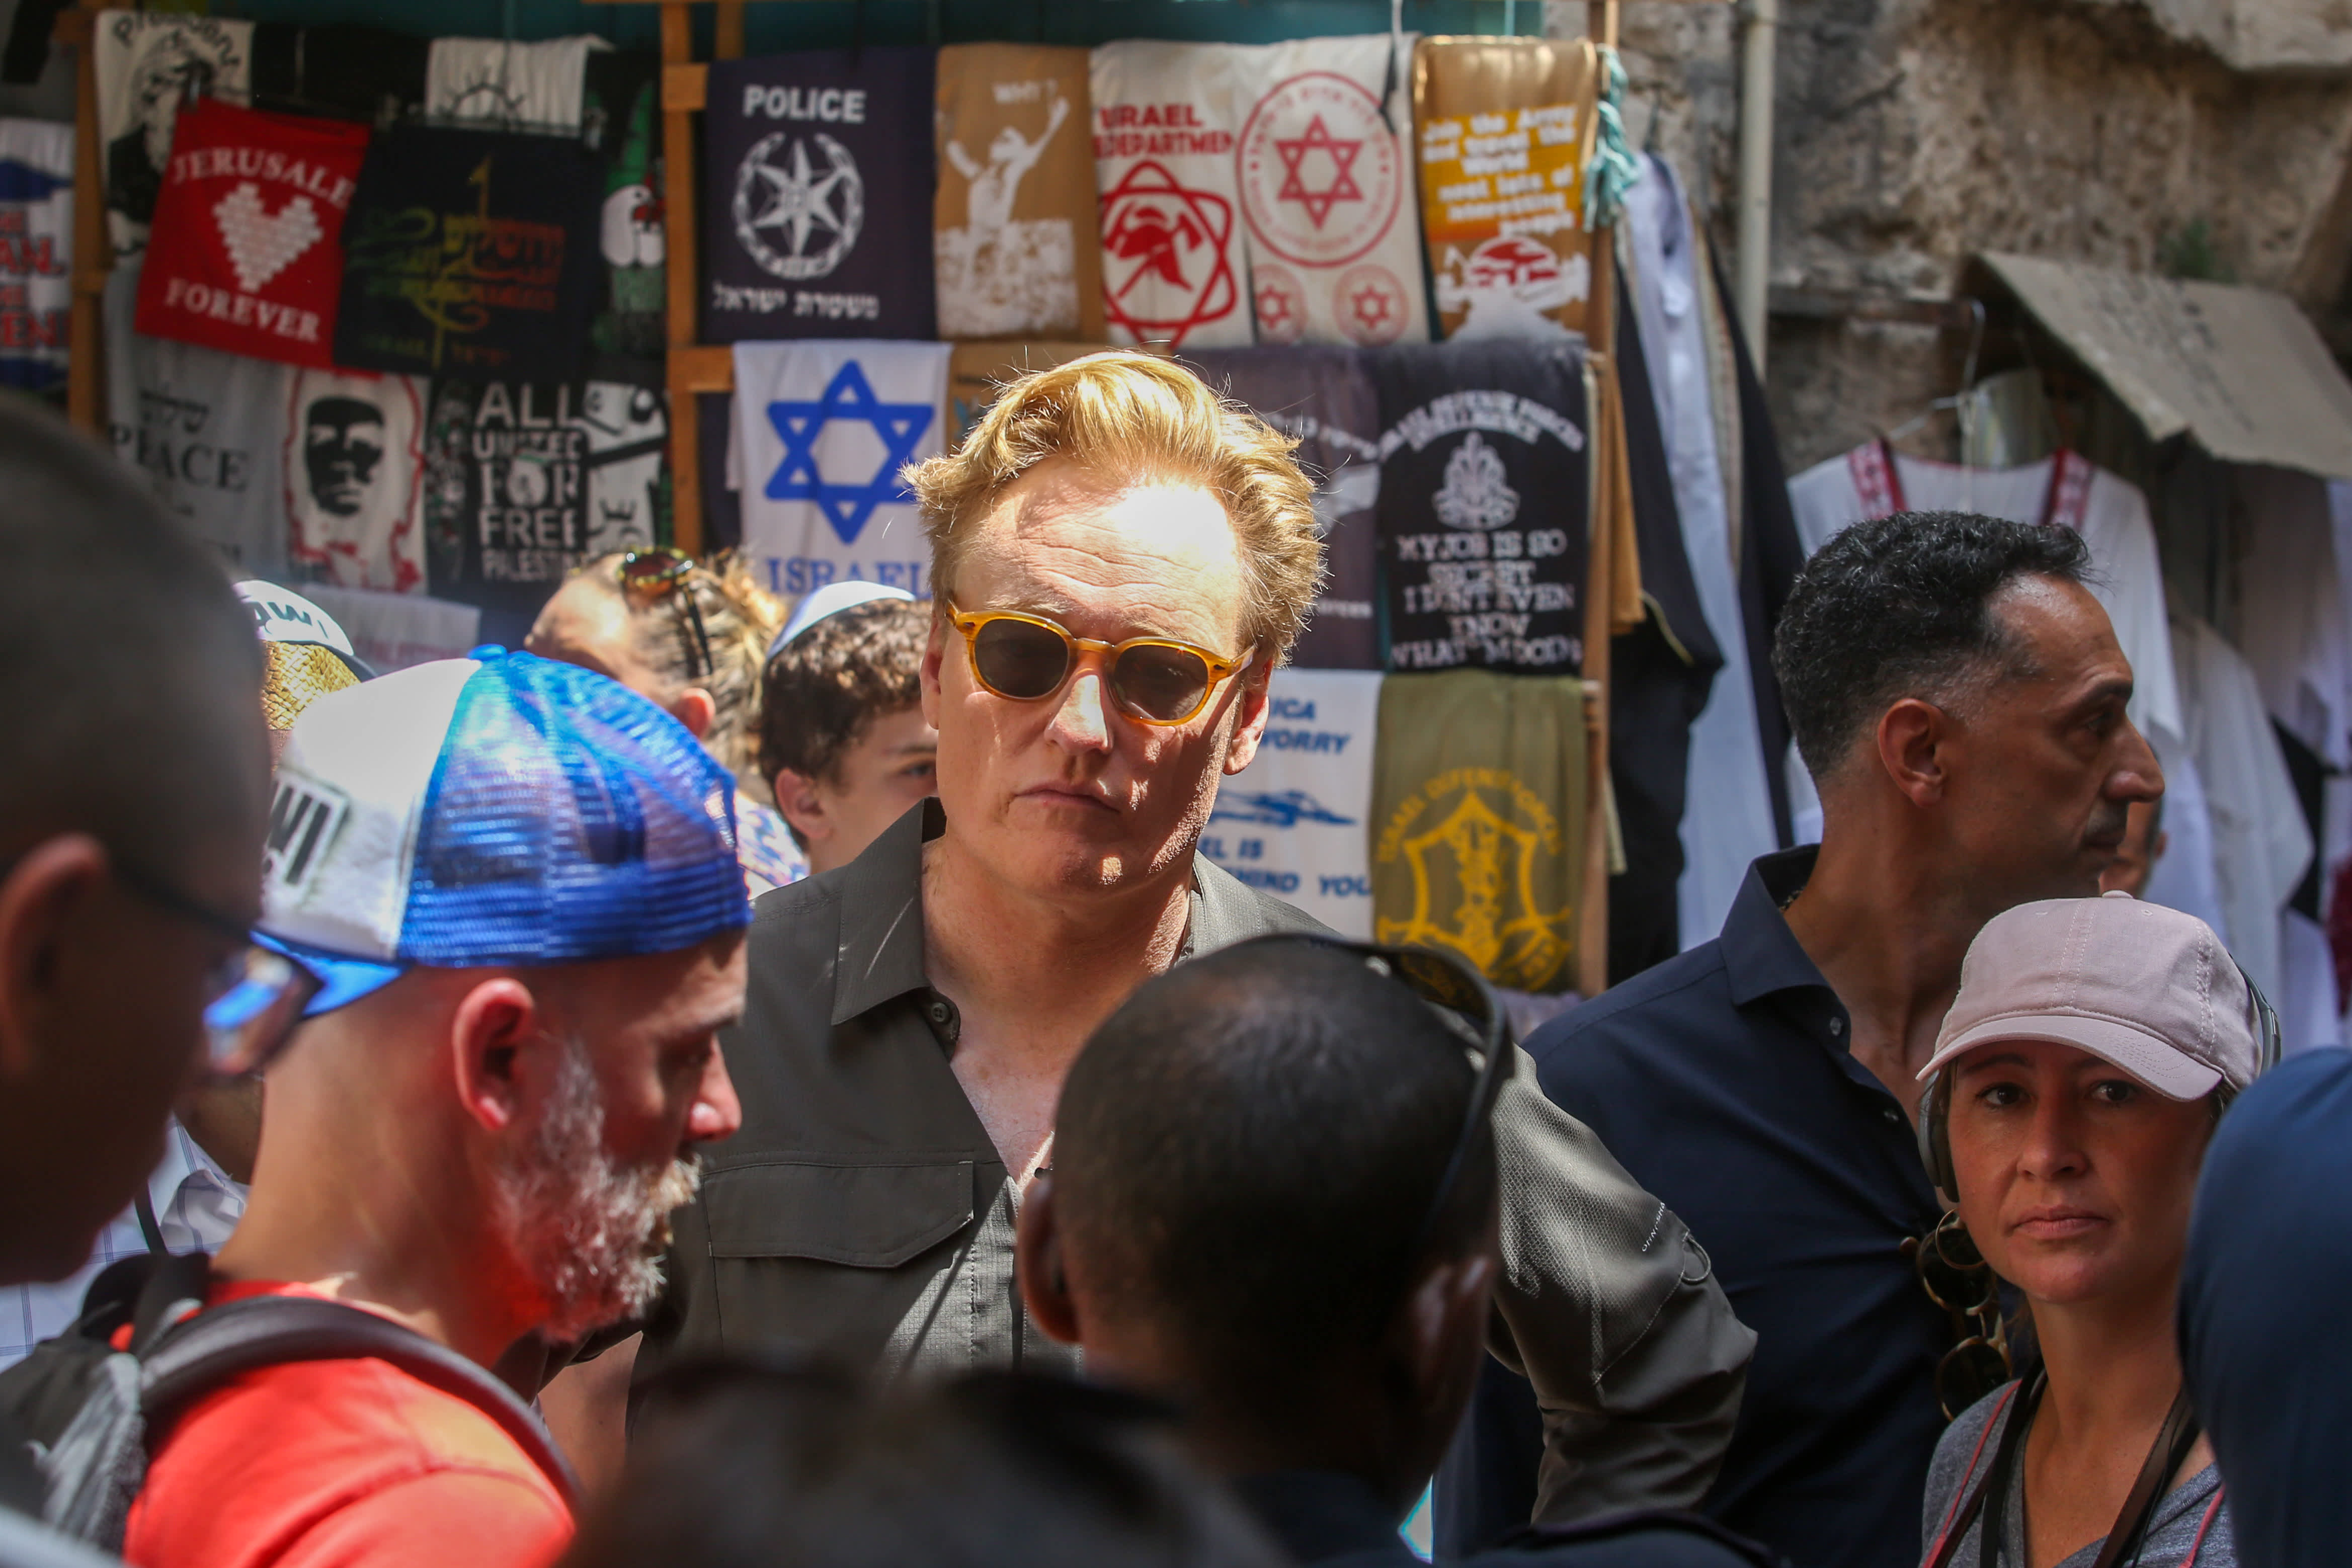 Conan O'Brien in the Old City of Jerusalm (MARC ISRAEL SELLEM/THE JERUSALEM POST)